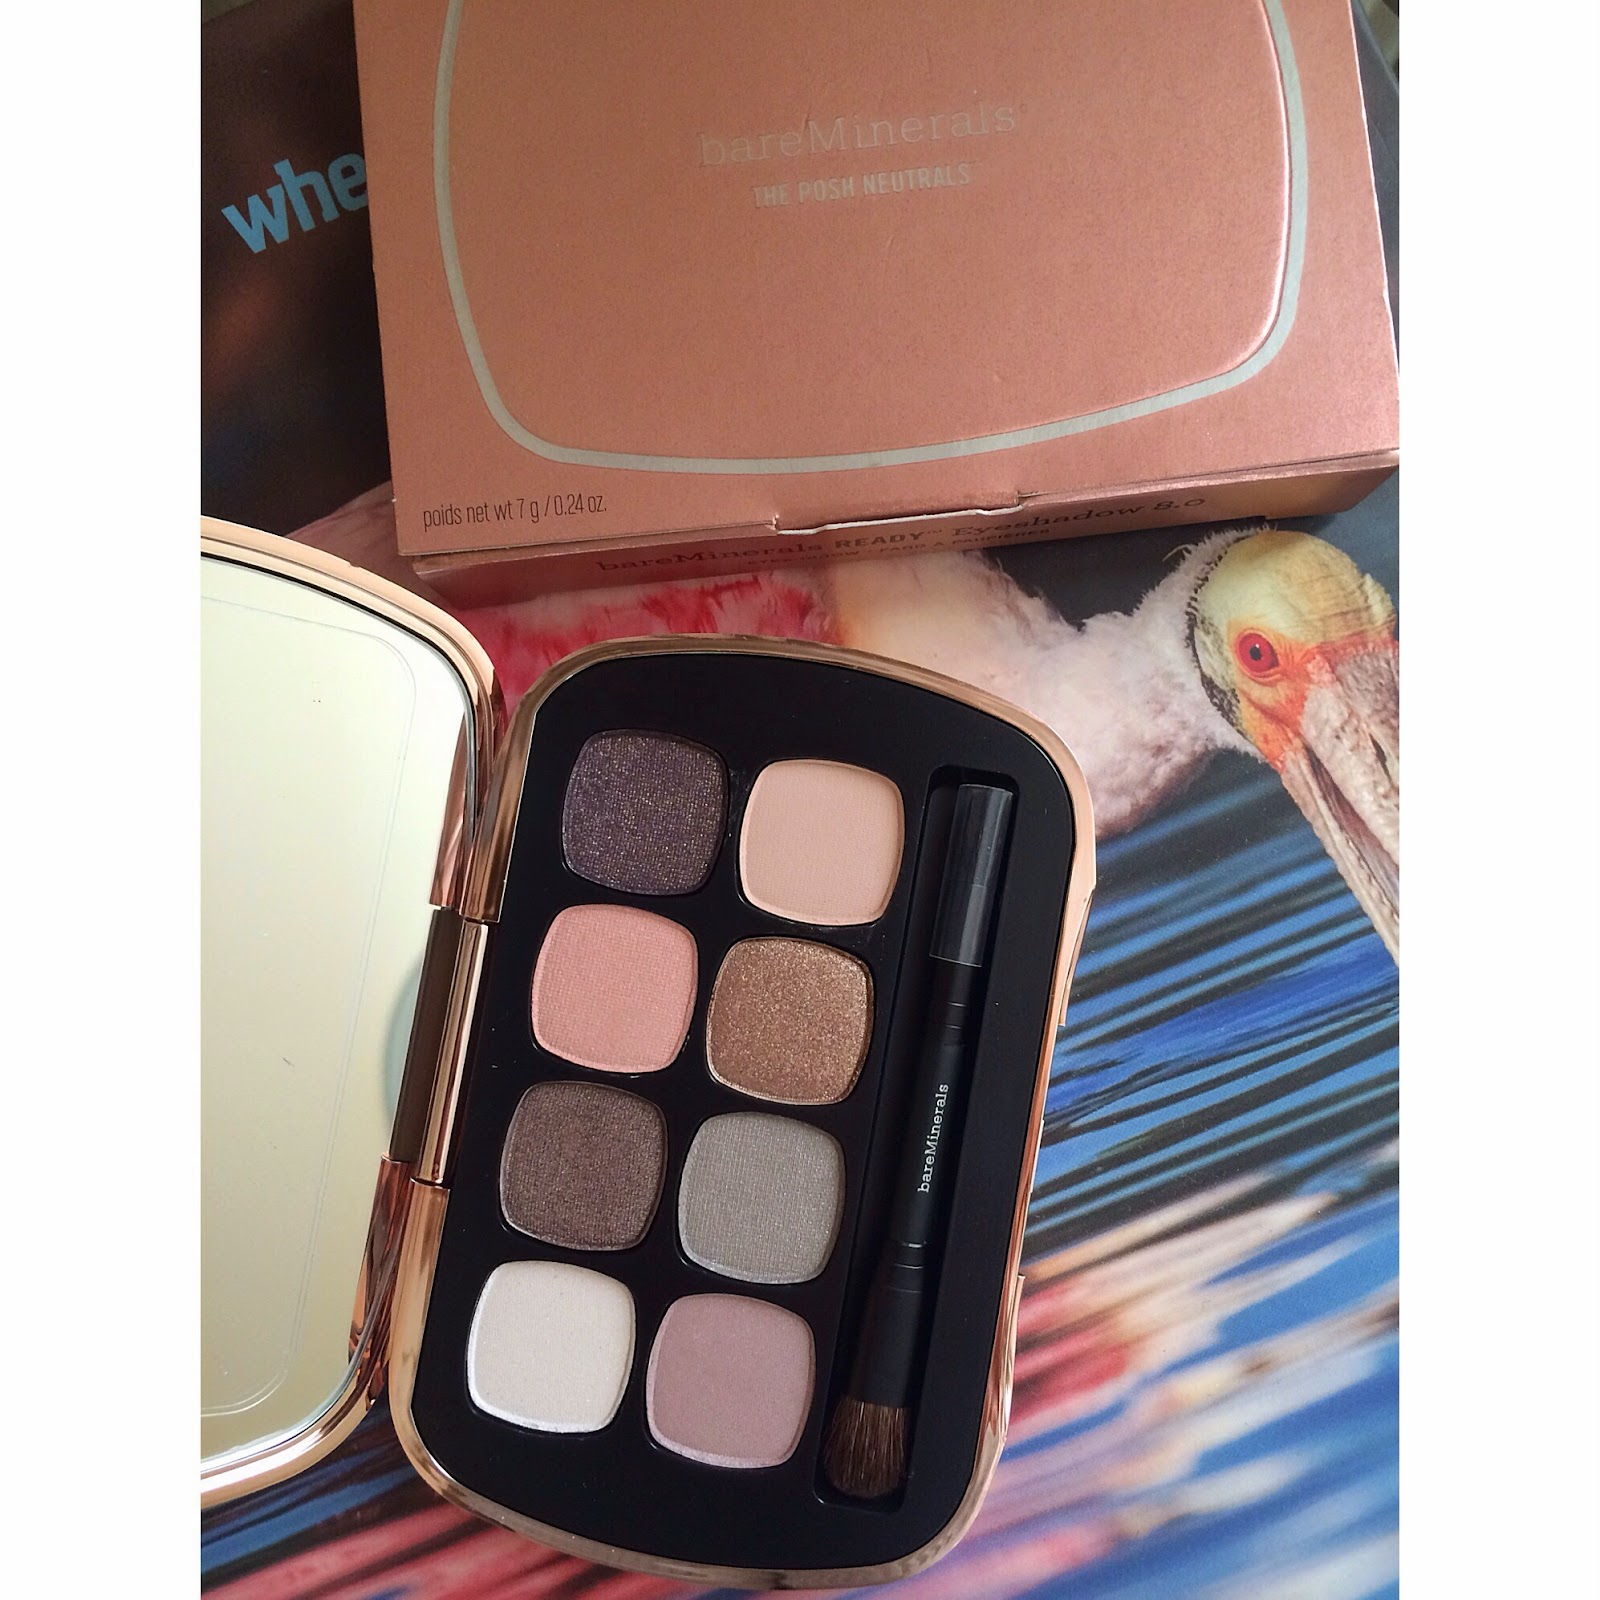 bareMinerals The Posh Neutrals